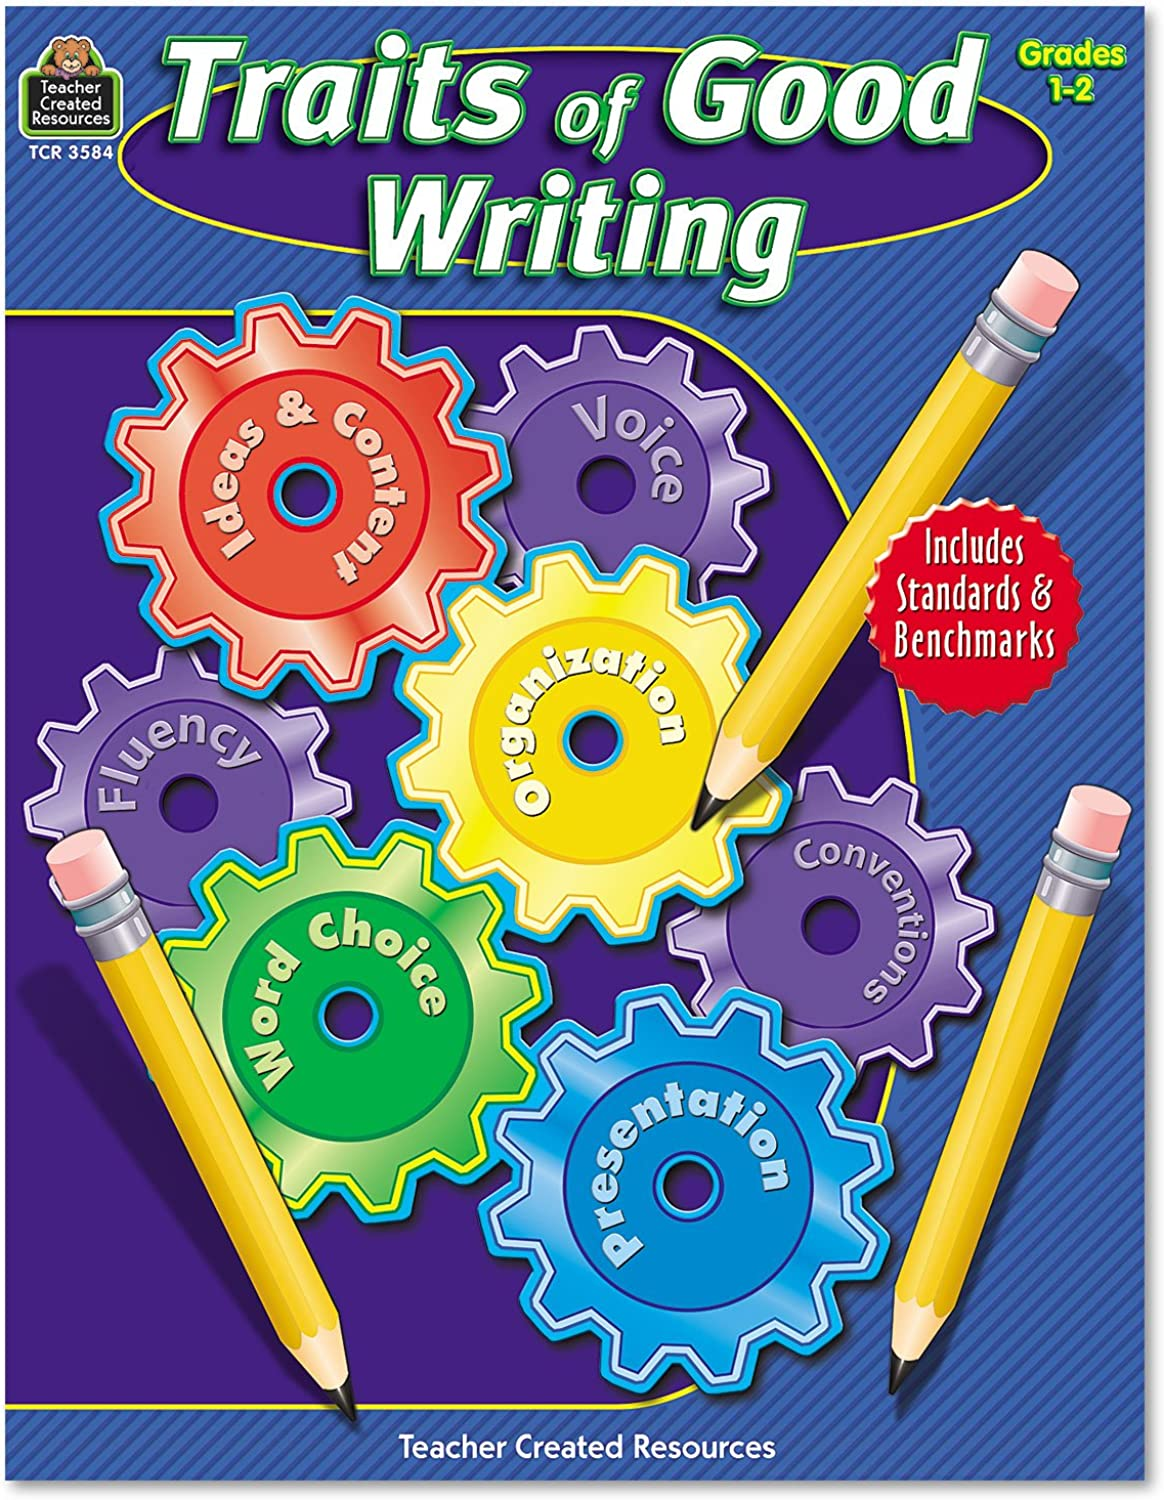 Teacher Created Resources 3584 Traits of Good Writing, Grades 1-2, 144 Pages (TCR3584)